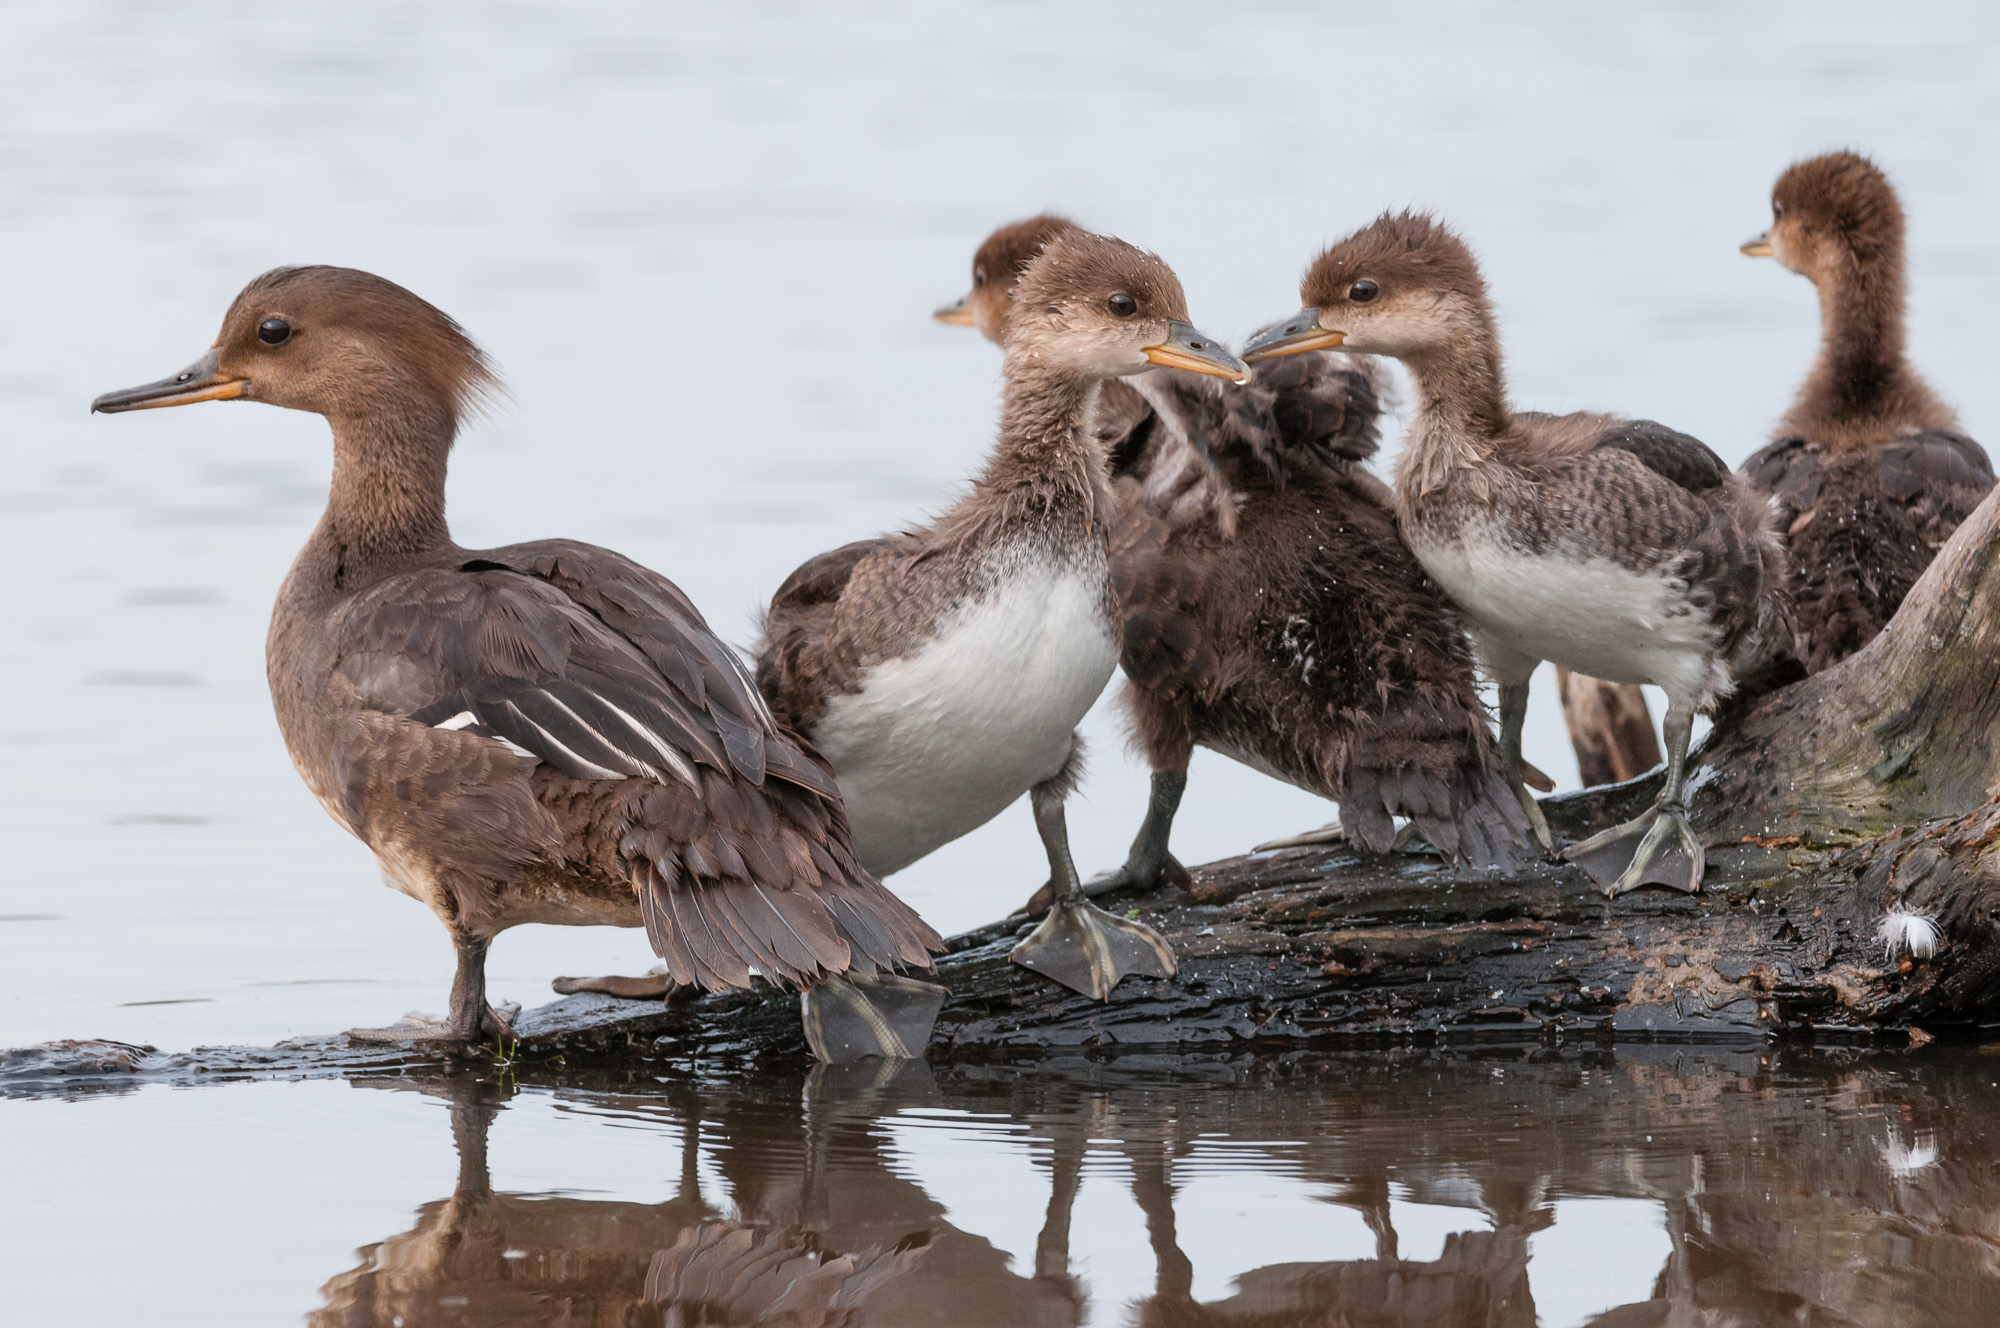 Rest time over, the family of Hooded Mergansers rise. Notice how sleek the mother's head can sometimes look.